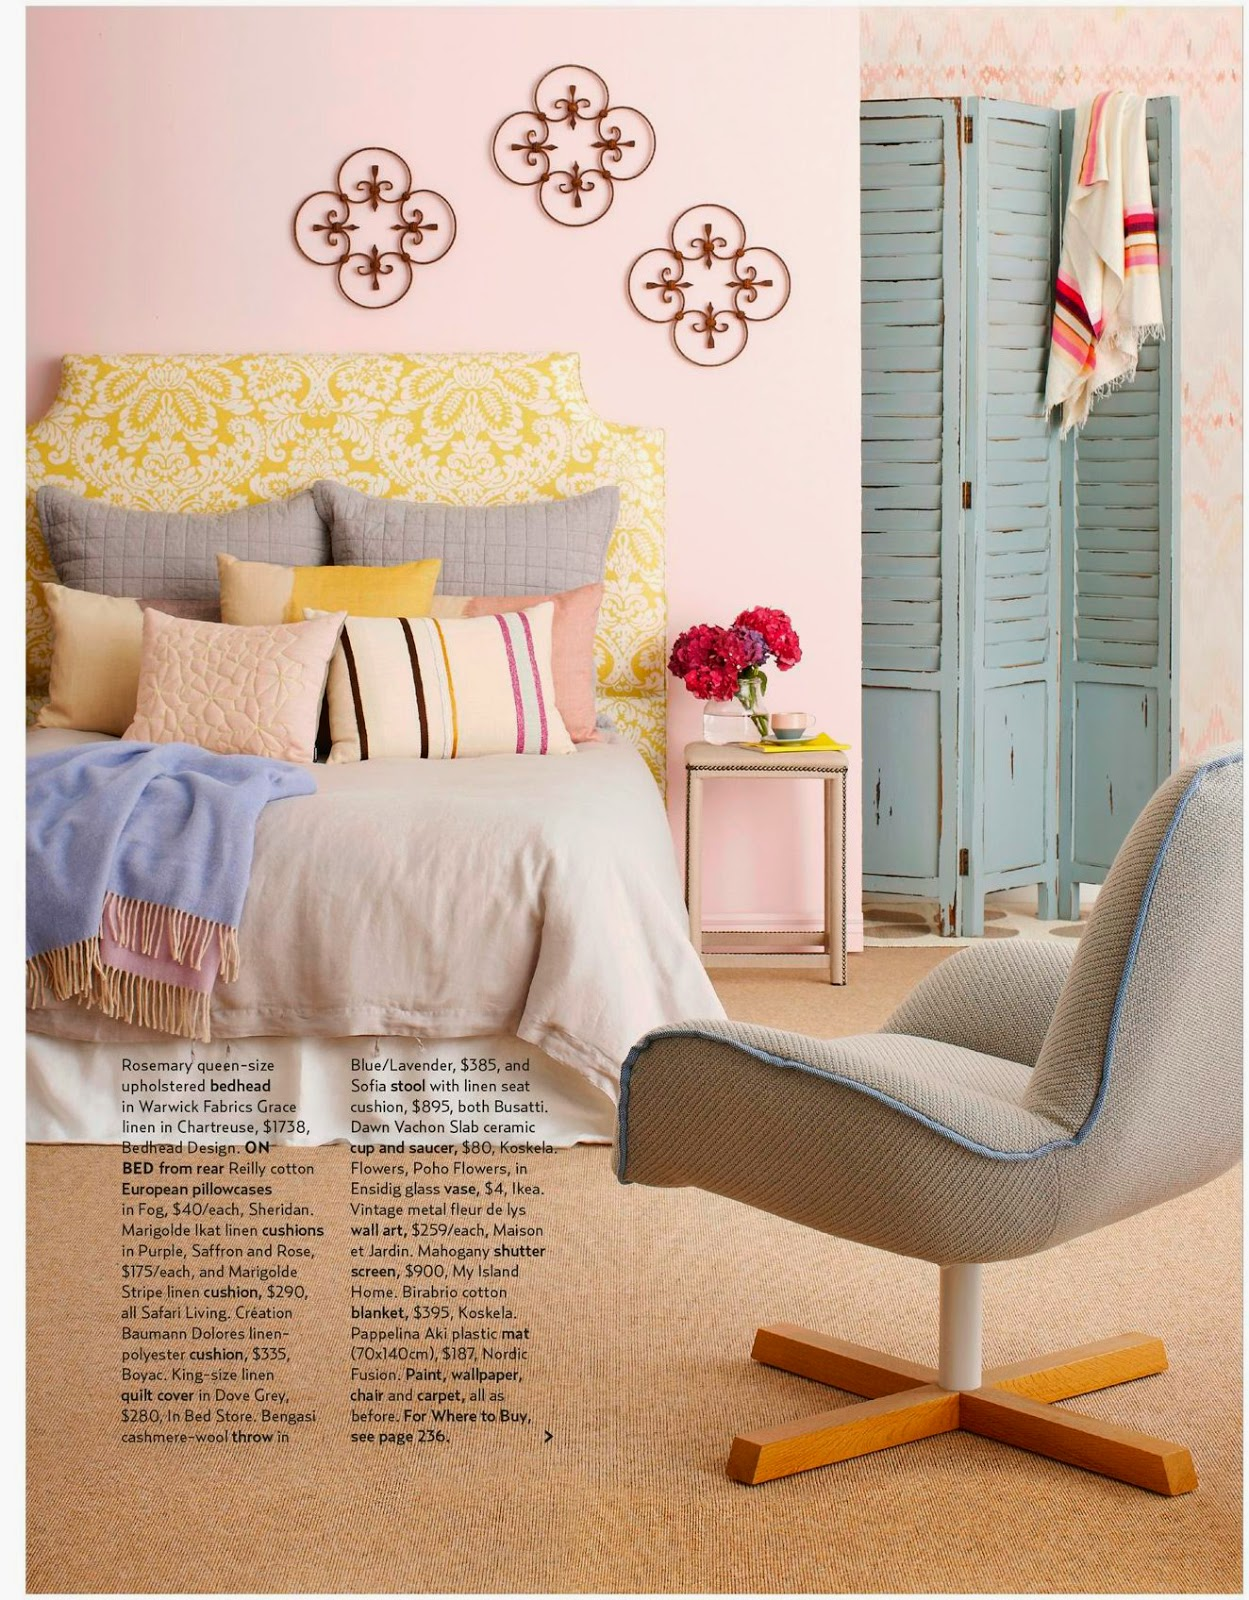 The Rosemary upholstered headboard from Bedhead Design becomes a real feature in the magazine shoot, showcasing a lovely linen fabric the top quality bedhead design steals the show.